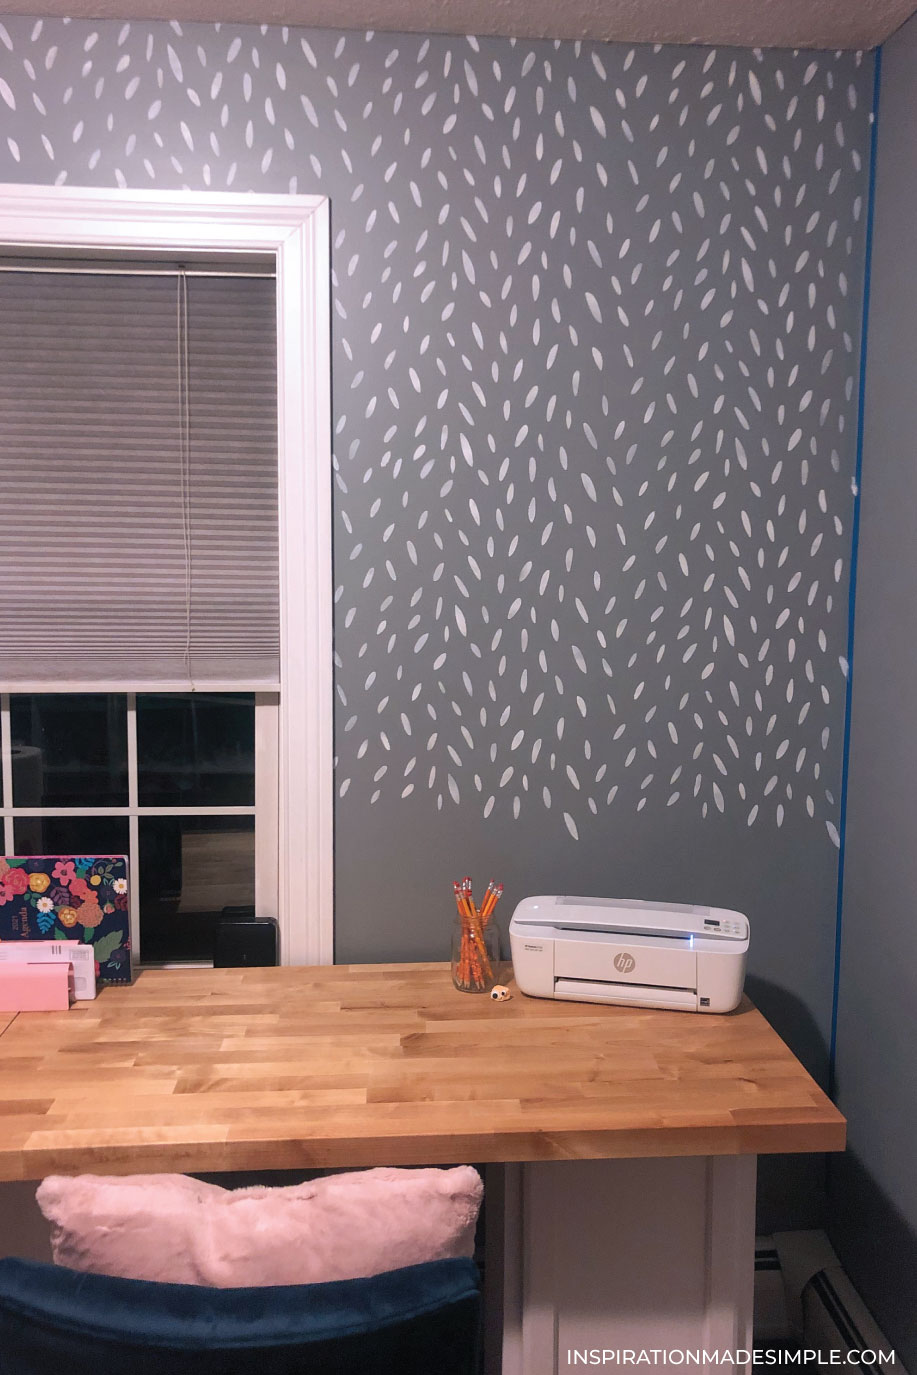 Using a large wall stencil